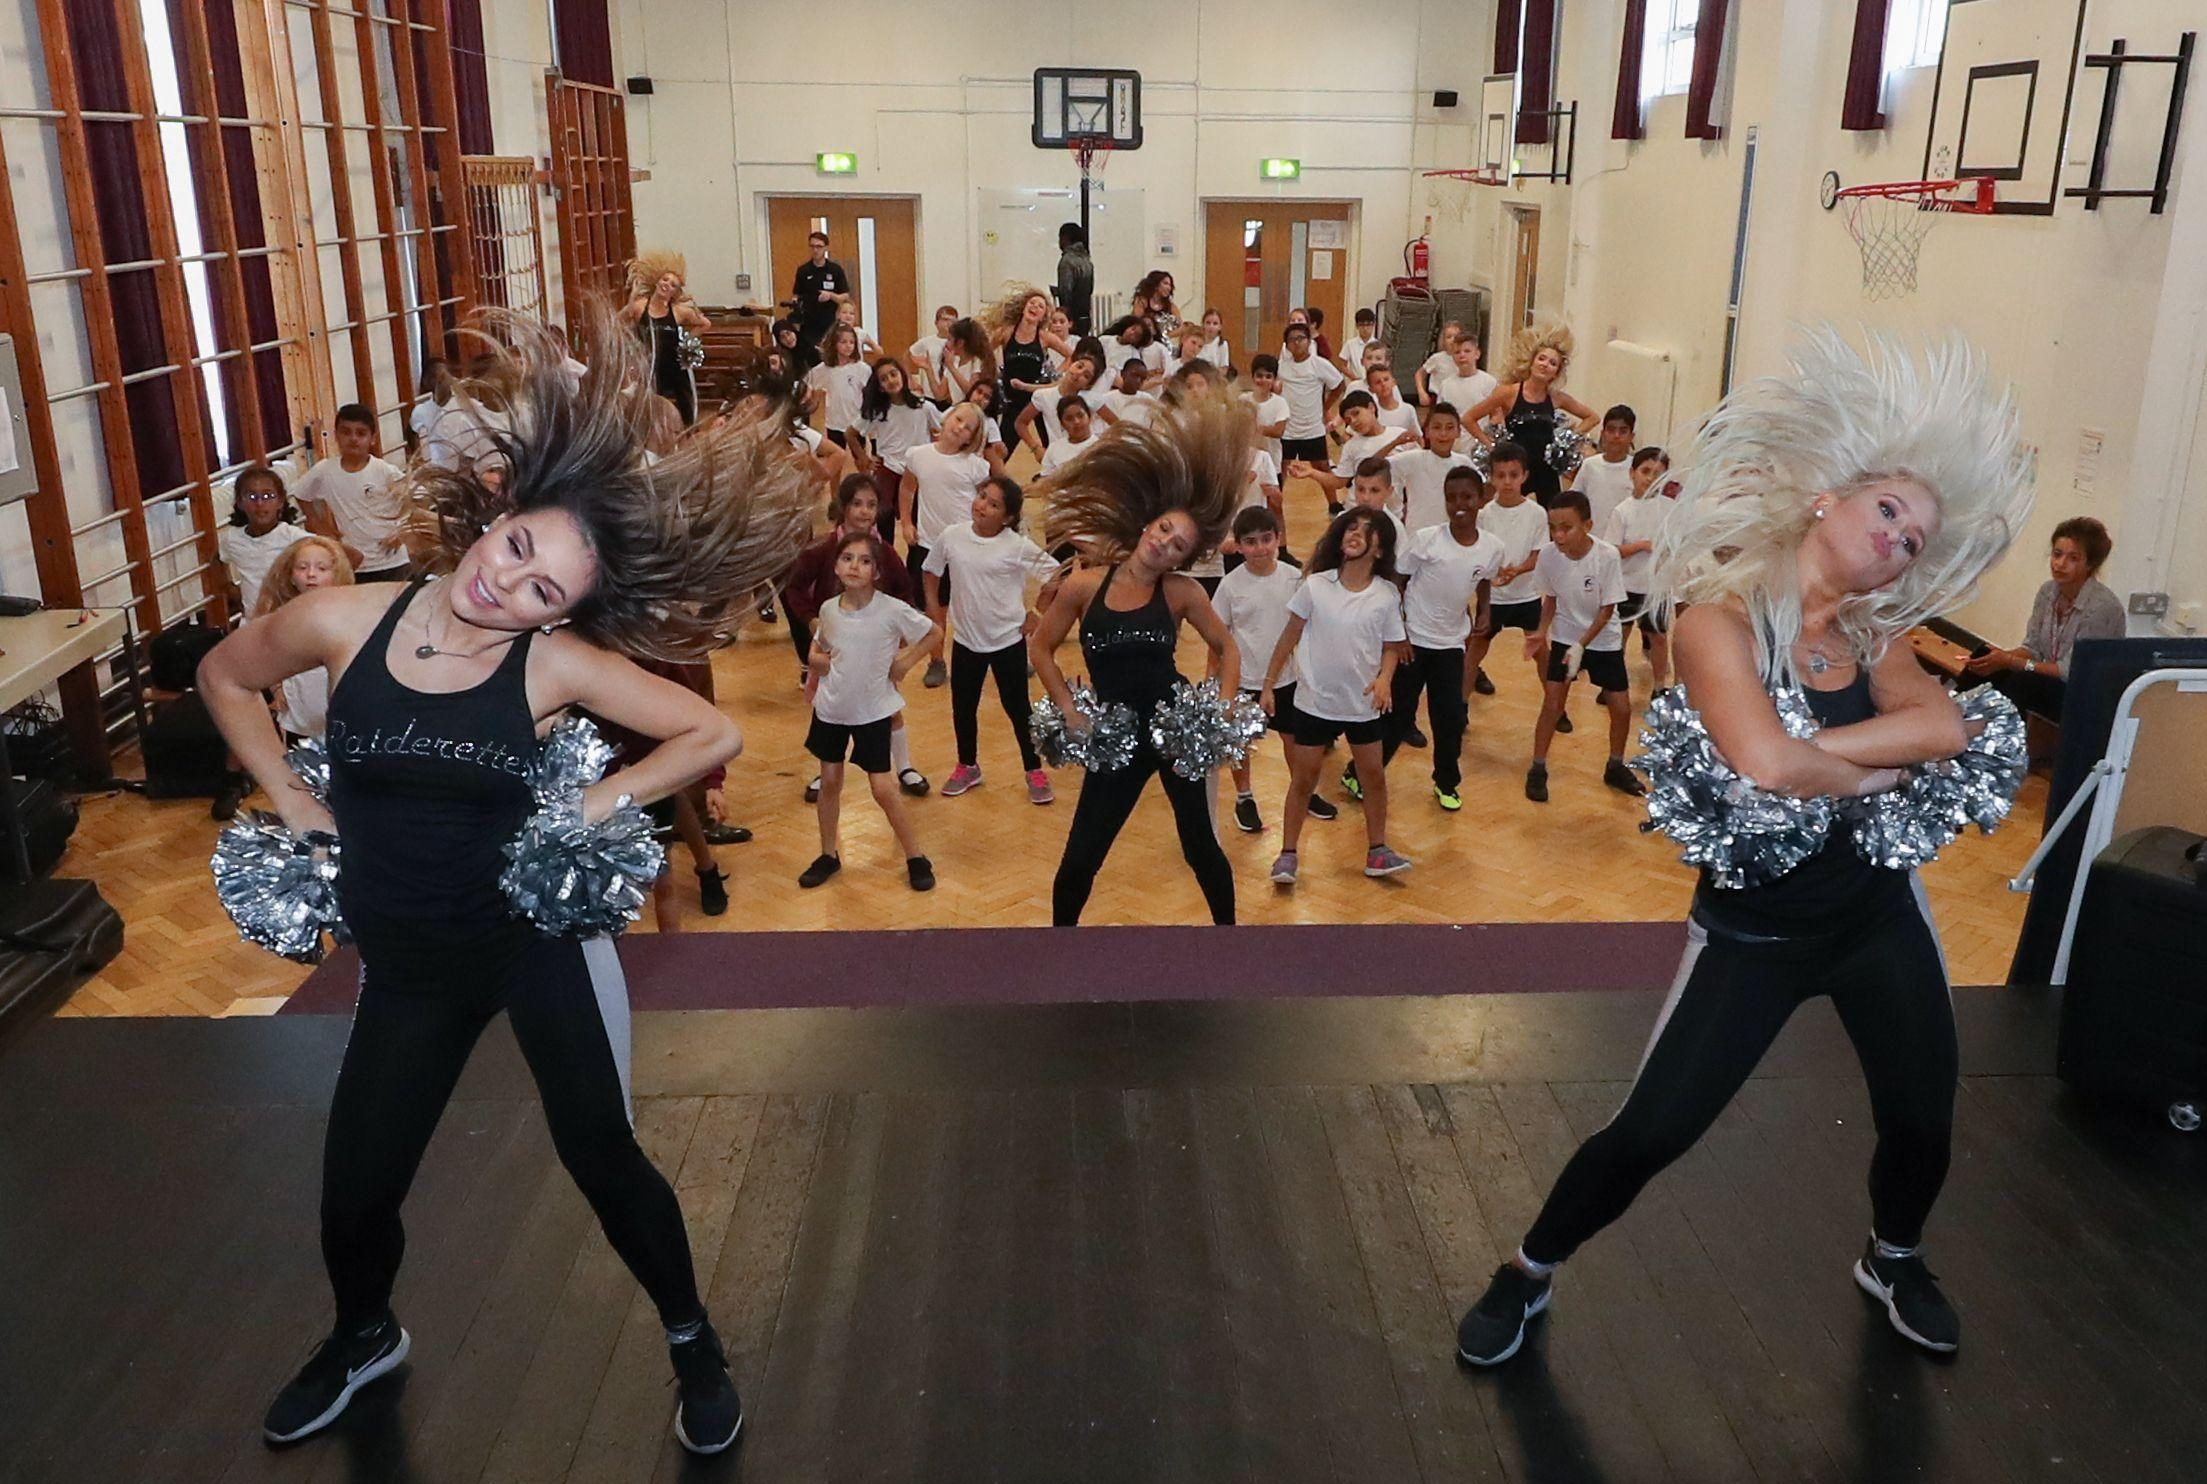 Teachers of the Raiderettes will have been right at home instructing the school children